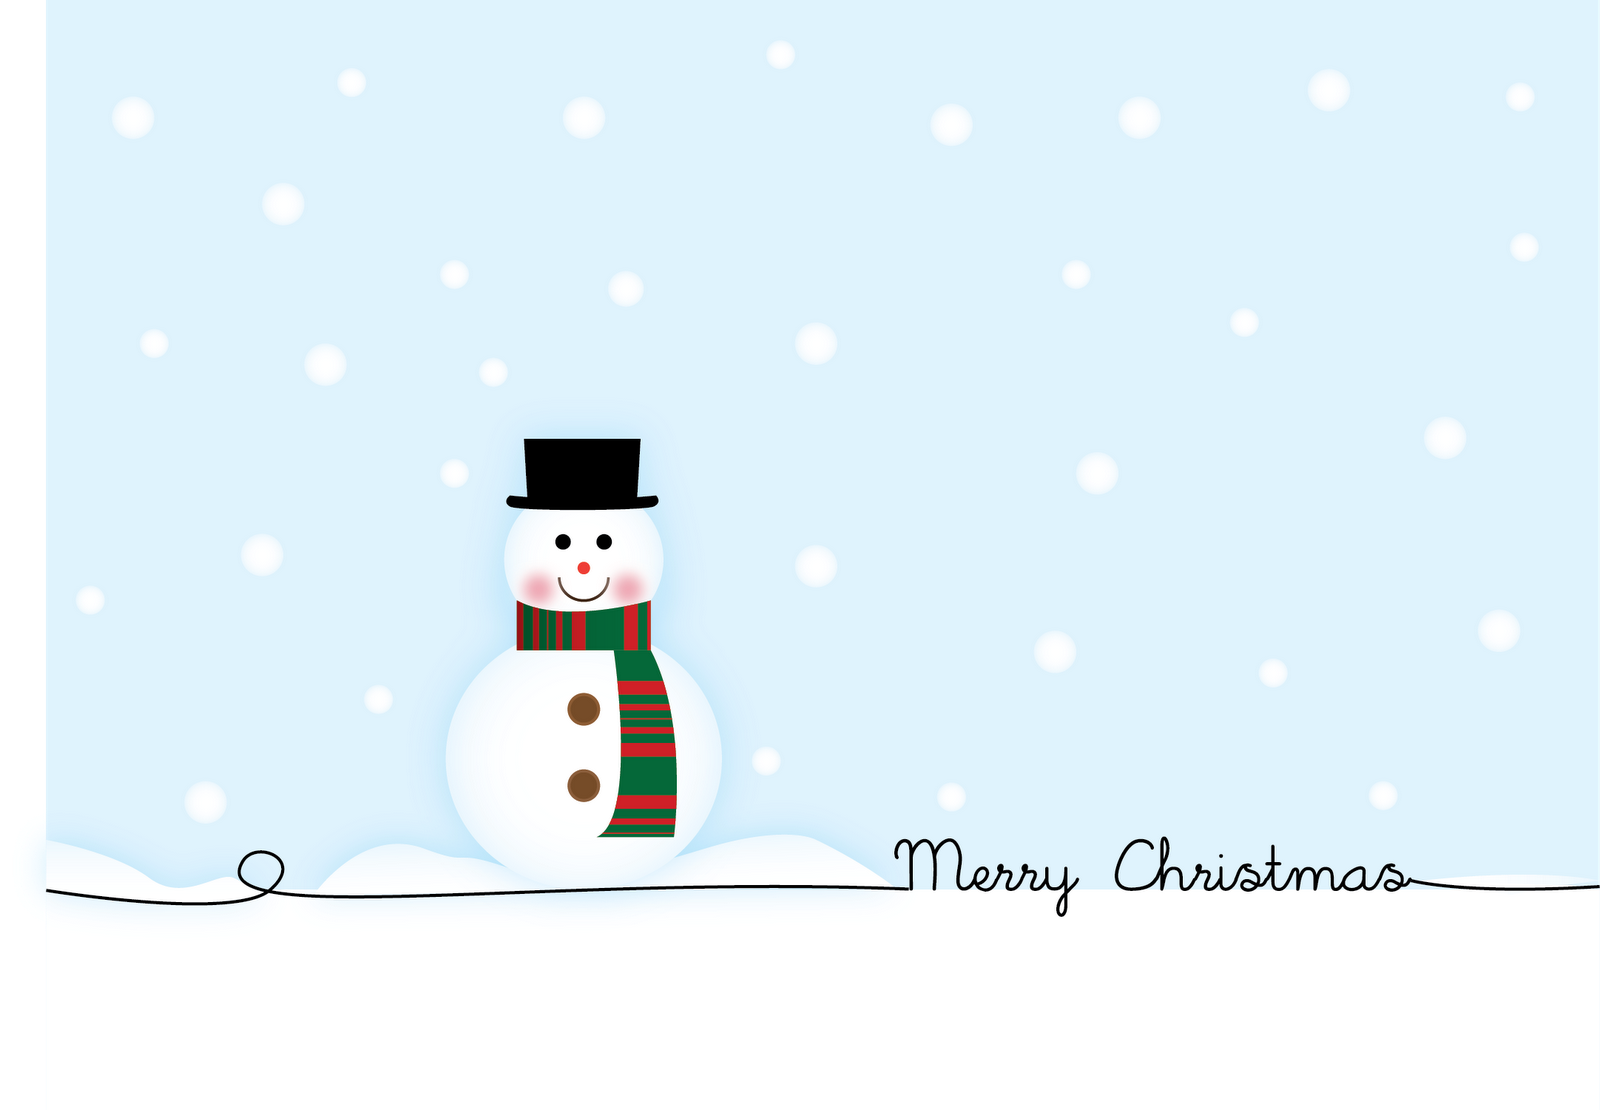 Creative Pinch: Christmas Cards on Zazzle